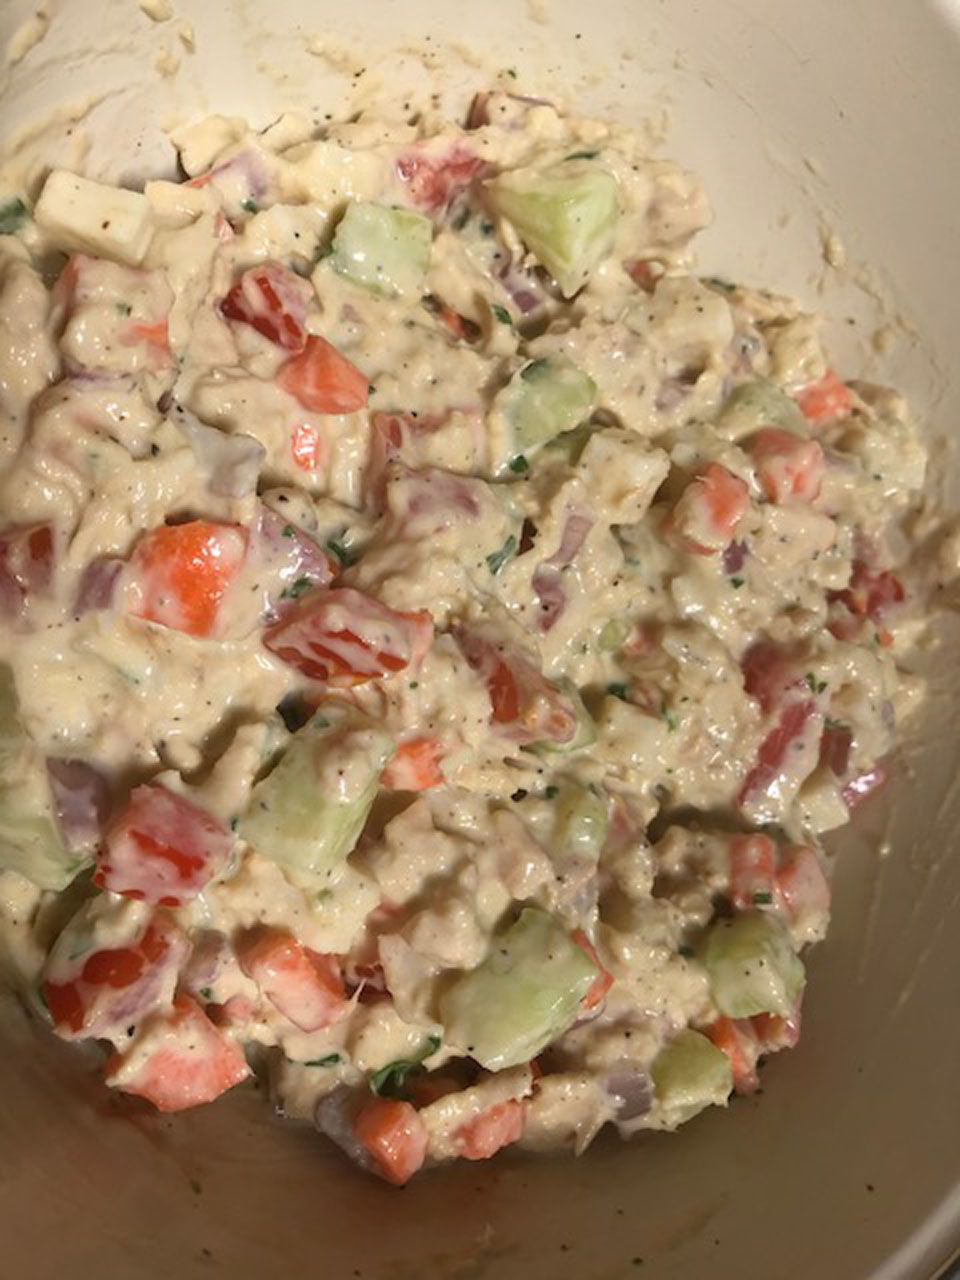 Stacy's Crunchy Tuna Salad